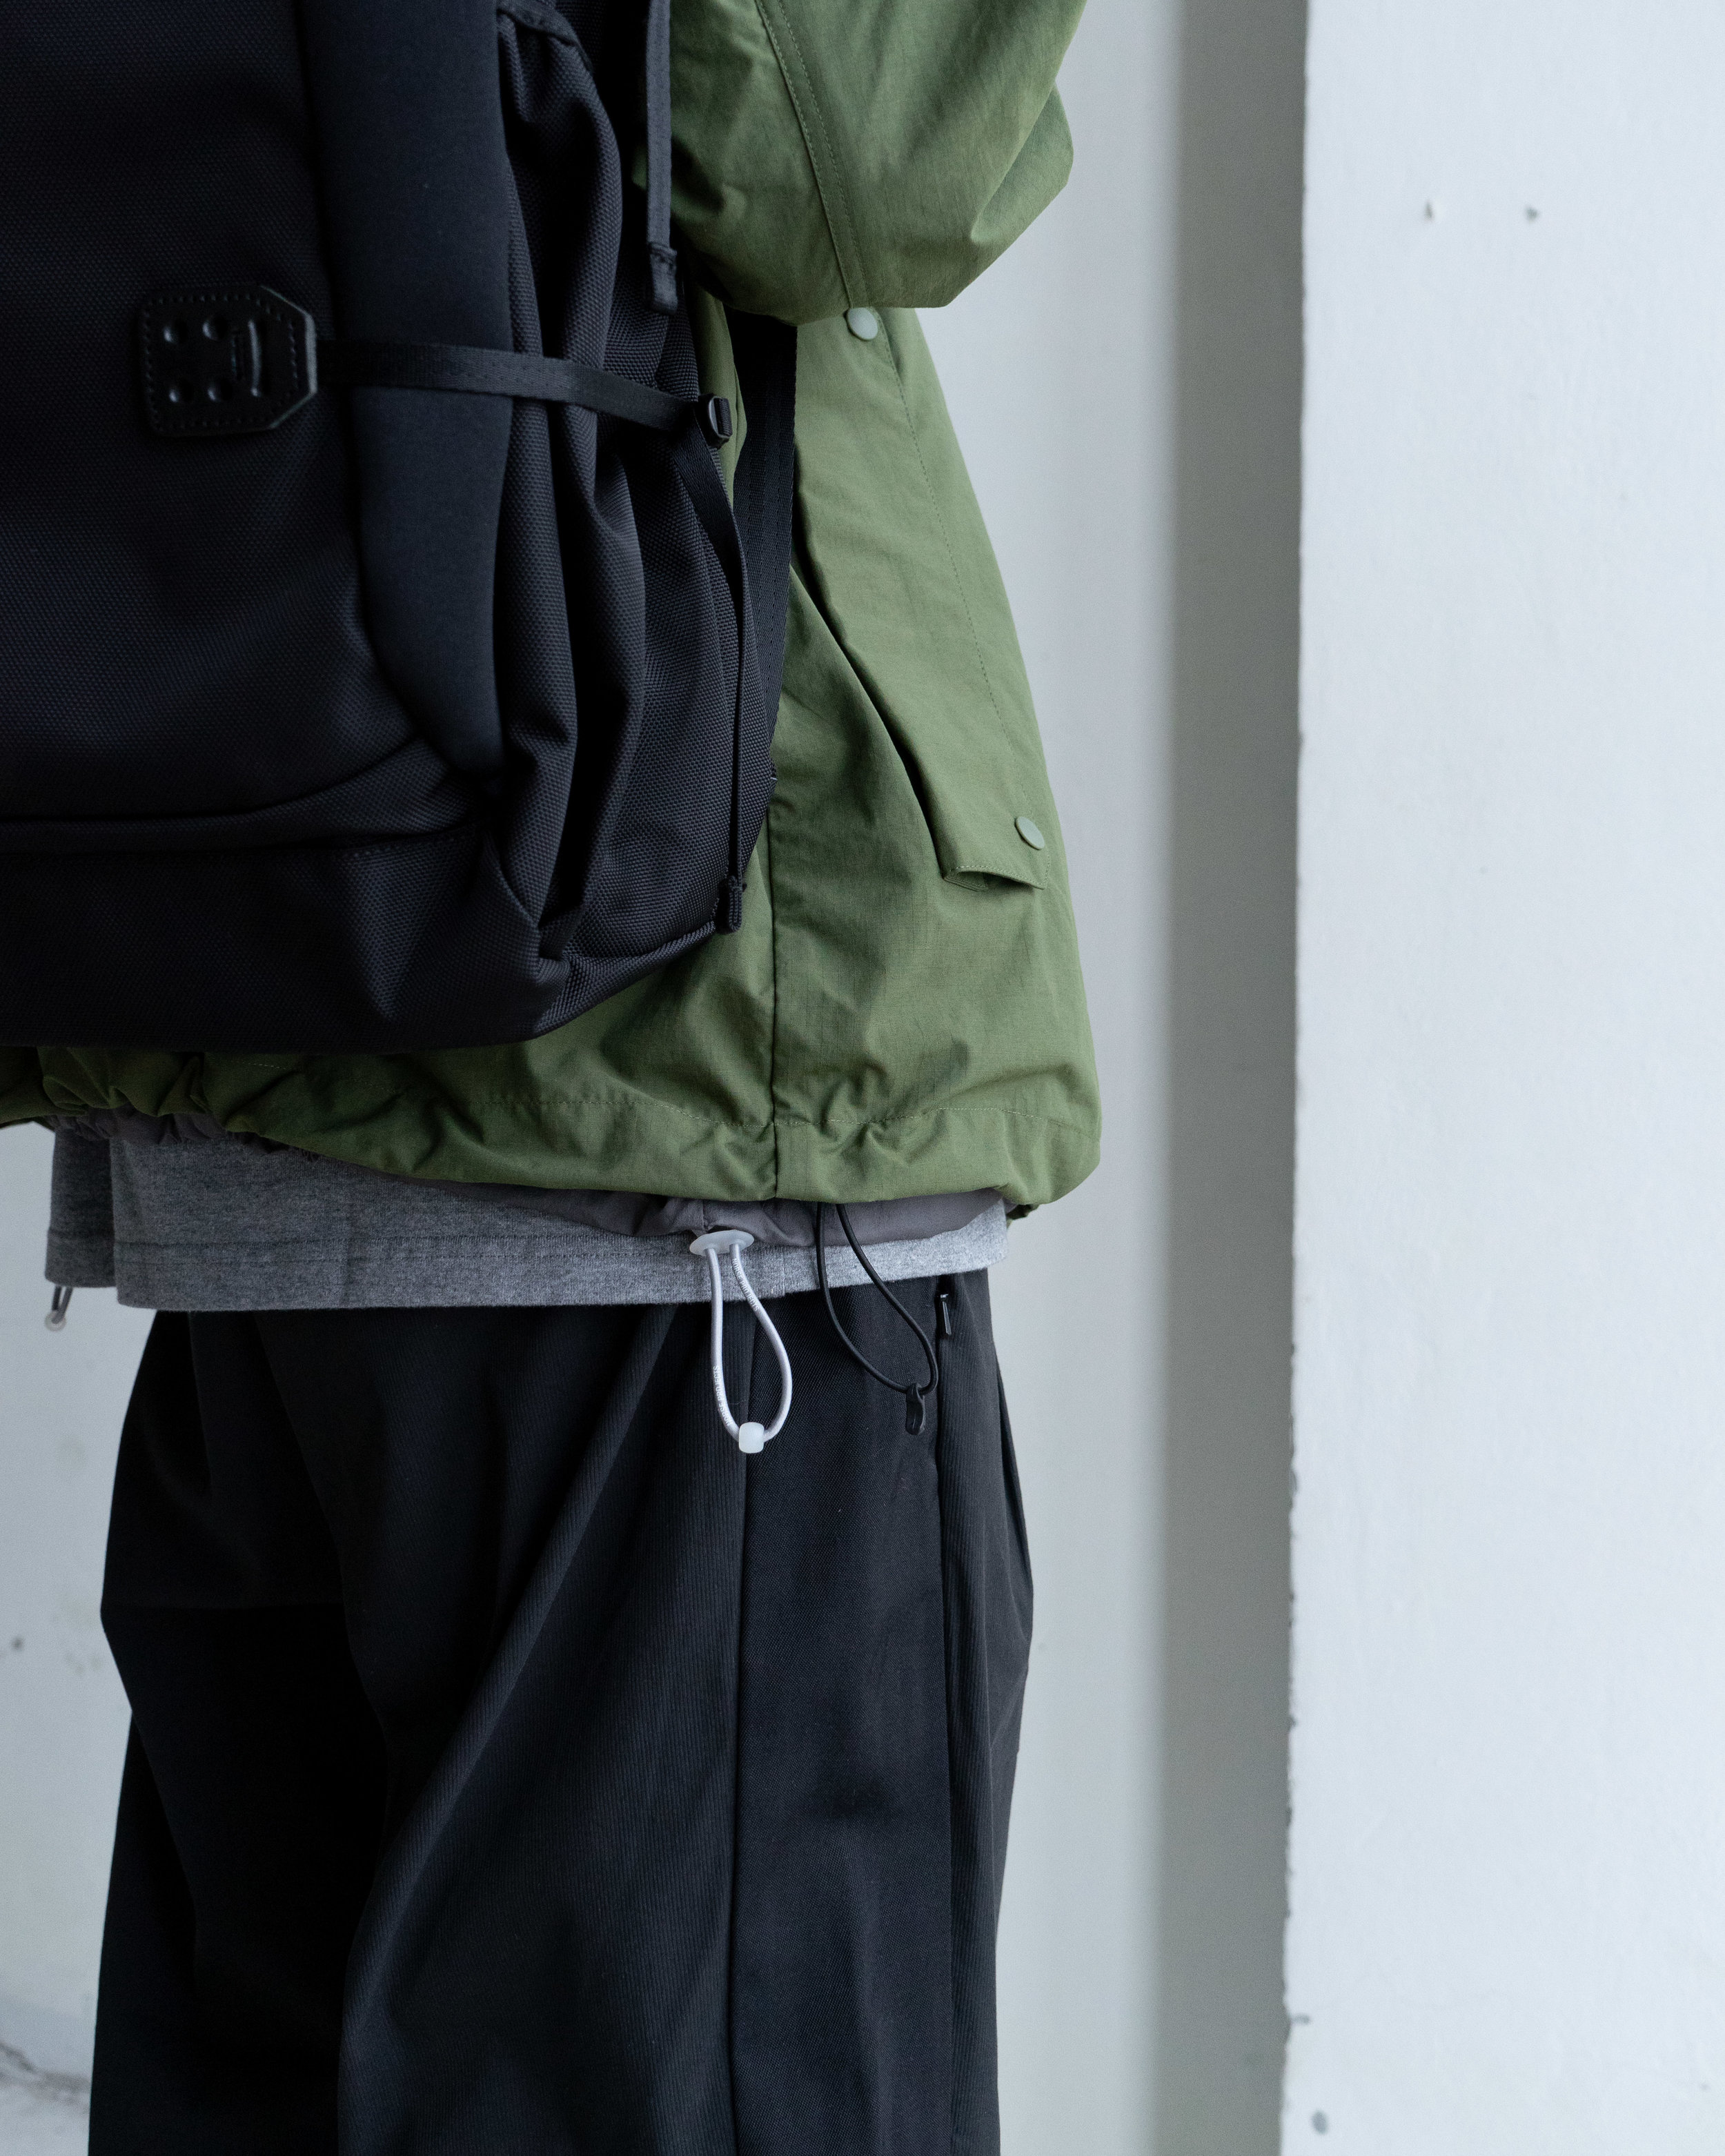 Goldwin Lifestyle - Coach Jacket   Norse Projects - Kalmar Light Rain Jacket   F/CE - Slash Wide Tapered Pant   Carhartt WIP - Chase T-Shirt   F/CE - AU 2Way Bag